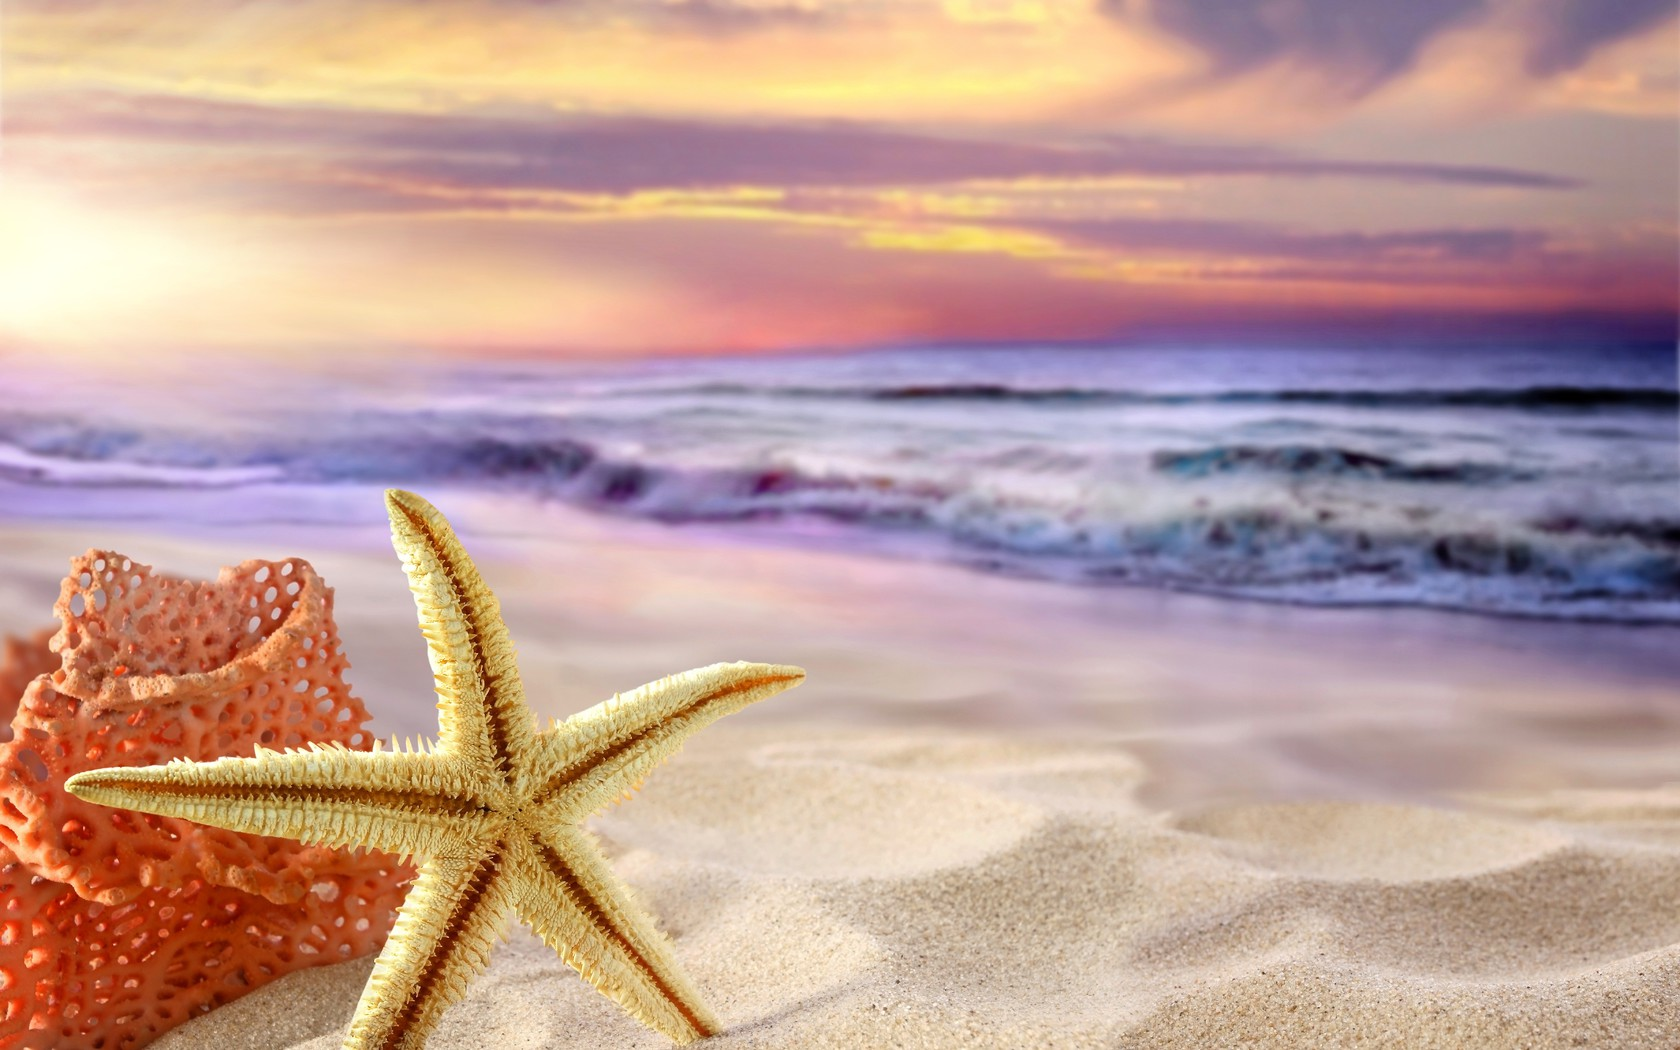 Iphone 5 Hd Wallpaper Nature Starfish Wallpaper Allwallpaper In 14908 Pc En